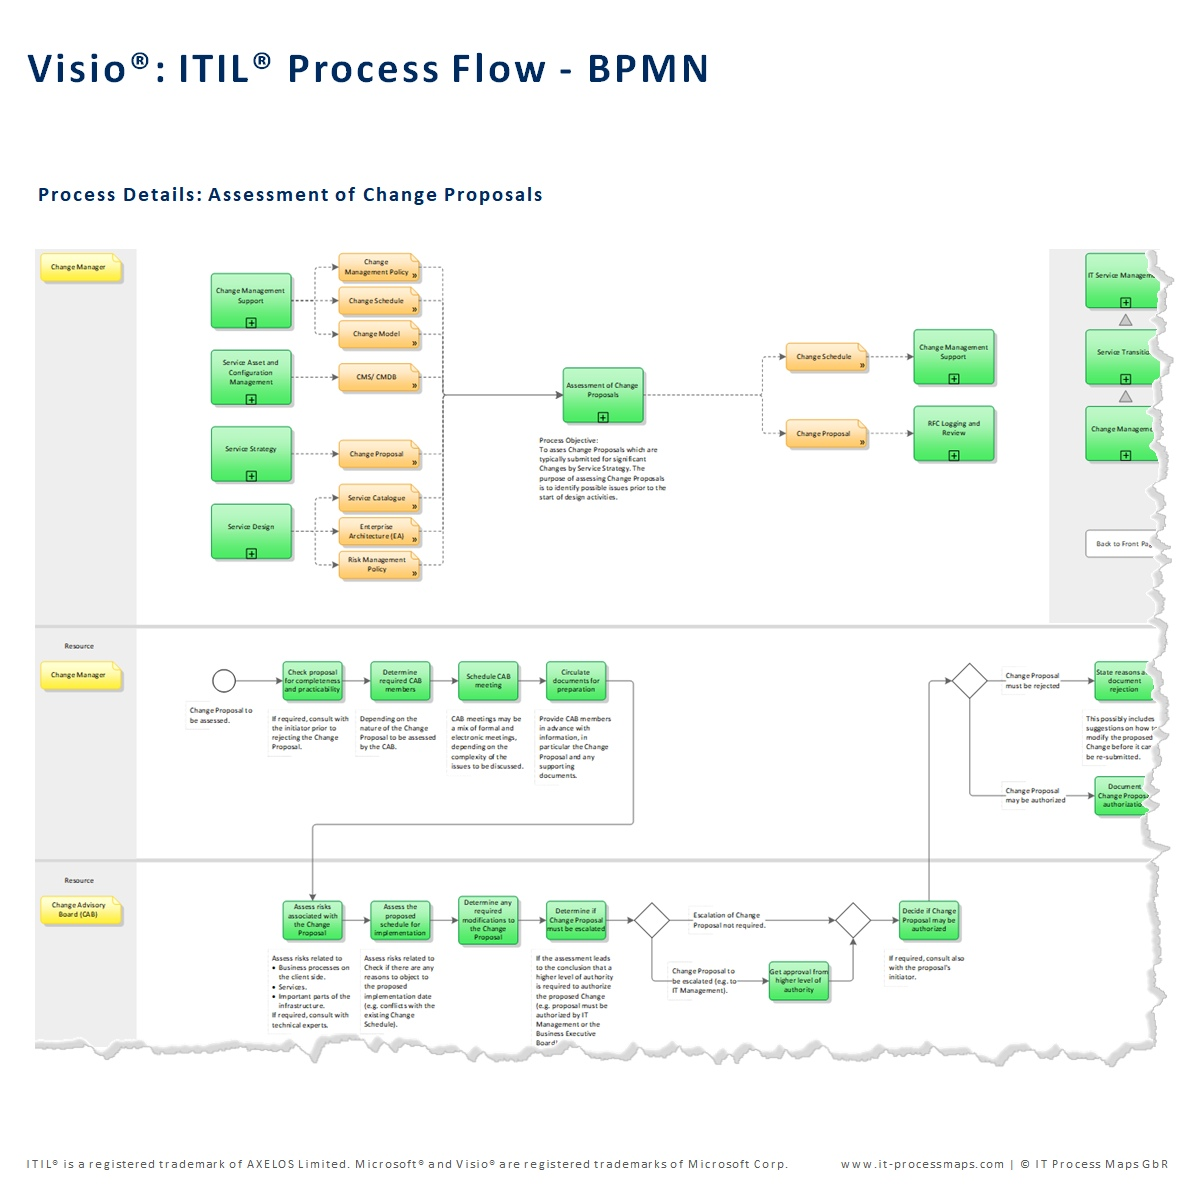 Visio Site Map Examples: ITIL Process Map For Visio